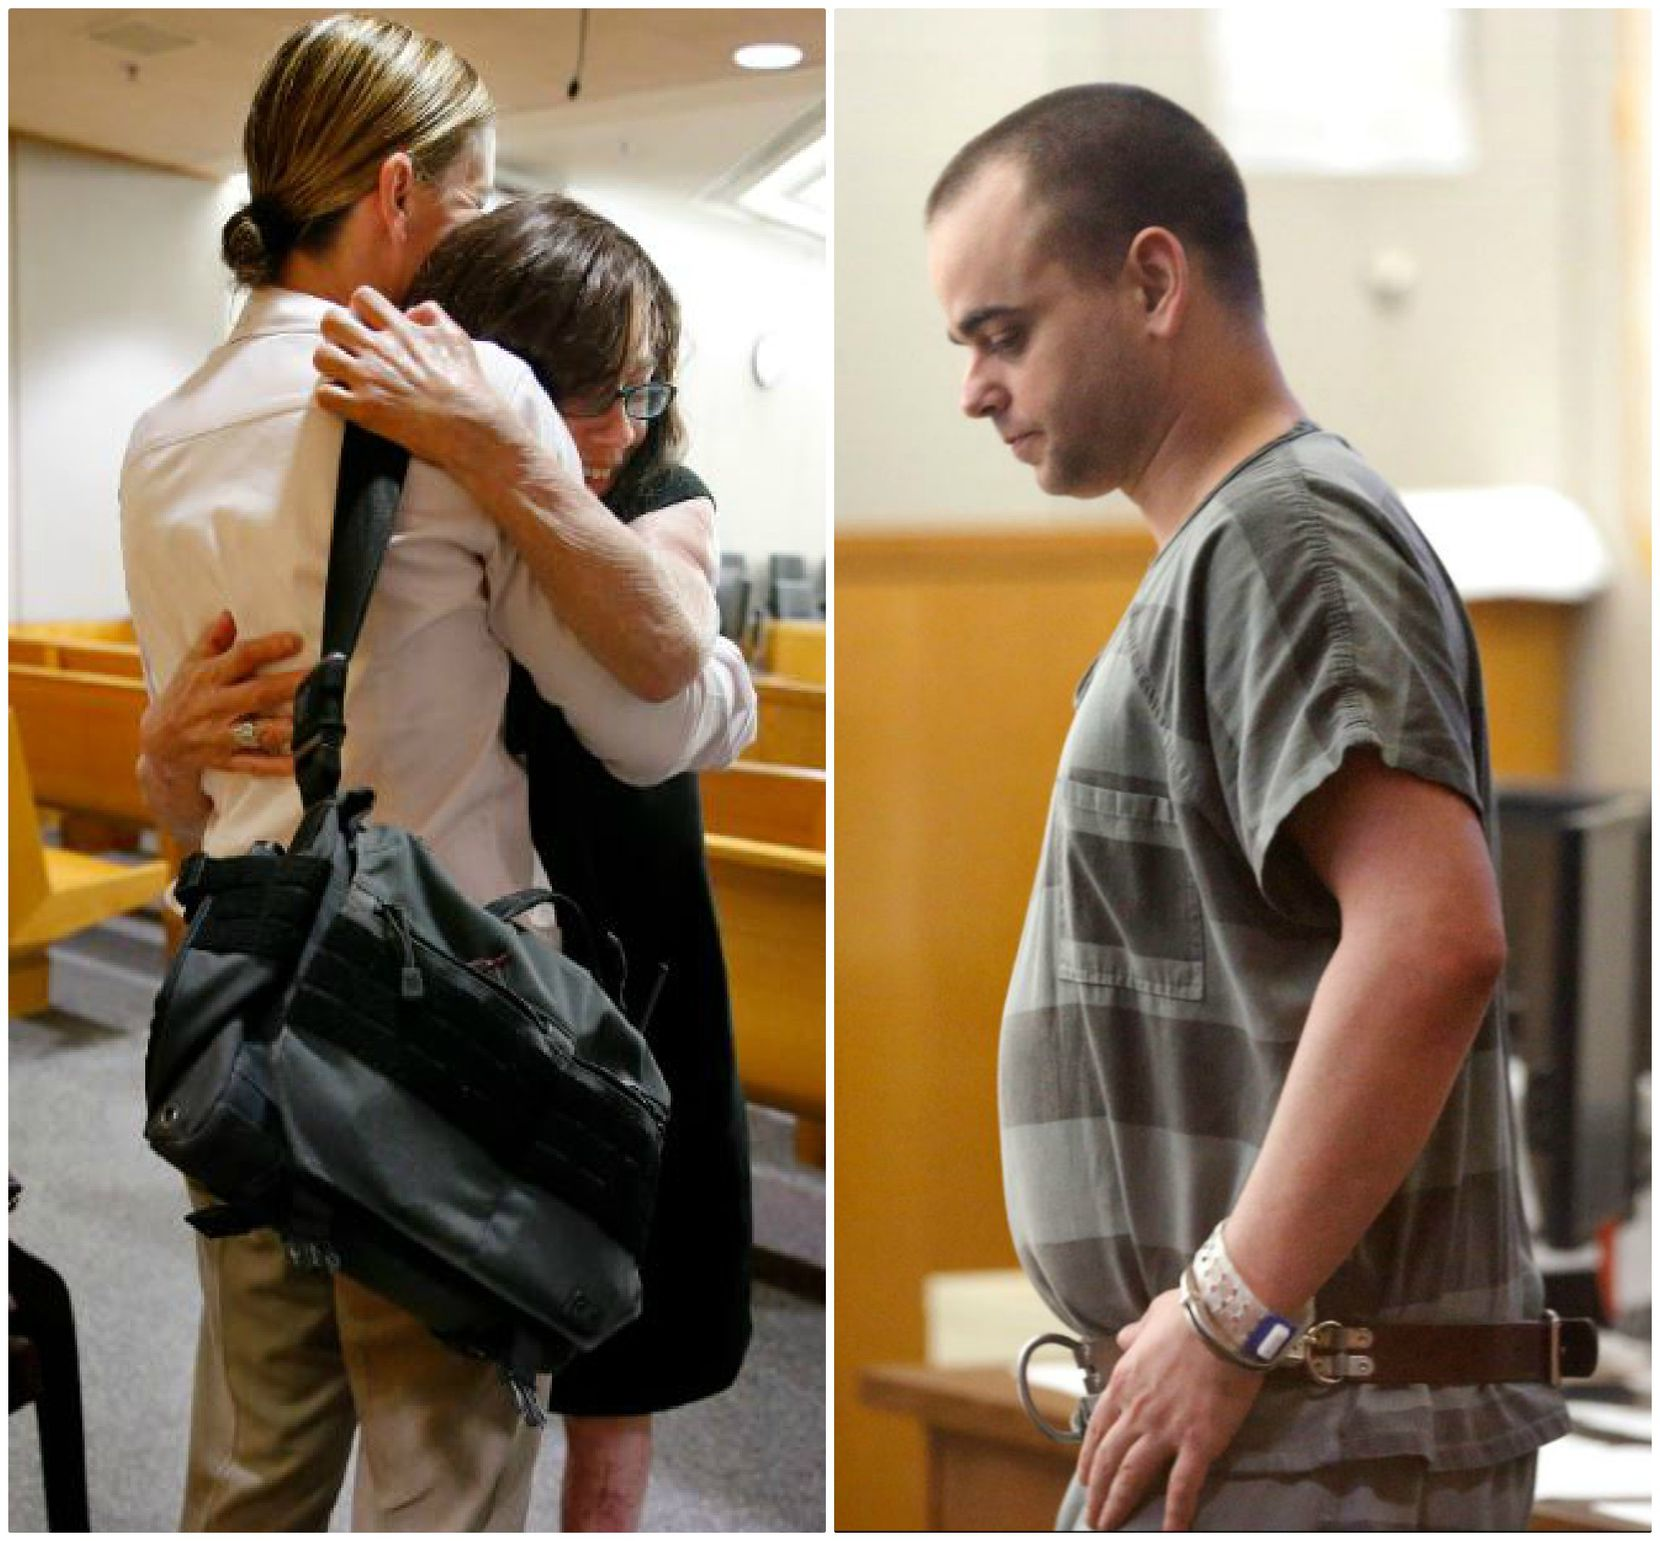 Danyeil Townzen (left) was hugged at the sentencing hearing for her ex-boyfriend, Matthew Gerth (right). Gerth was sentenced to life in prison Sept. 13 for setting Townzen on fire outside a Dallas apartment in 2018.